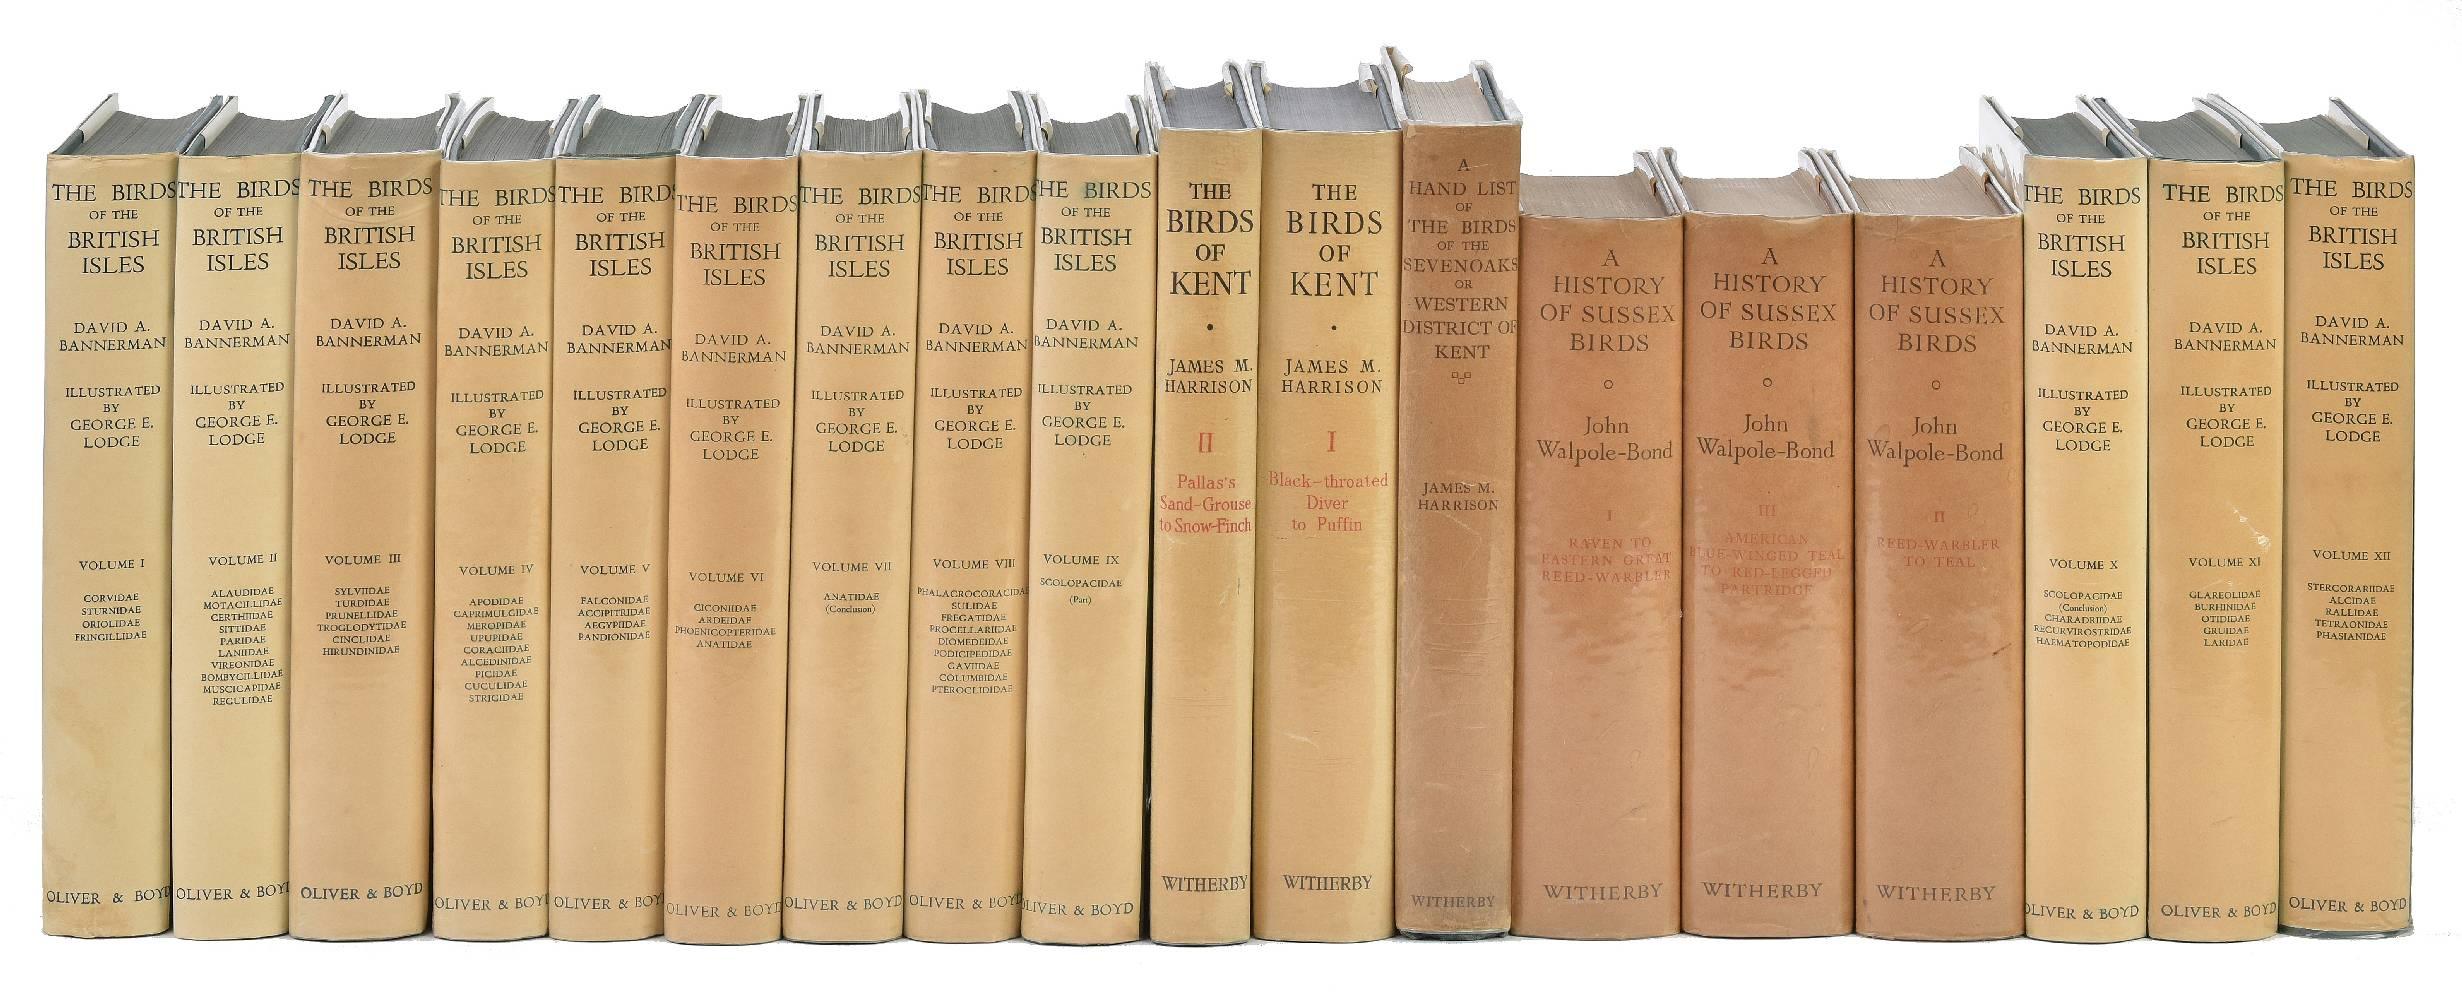 Lot 48 - Bannerman (David A.). The Birds of the British Isles, illustrated by George E. Lodge, 12 volumes,